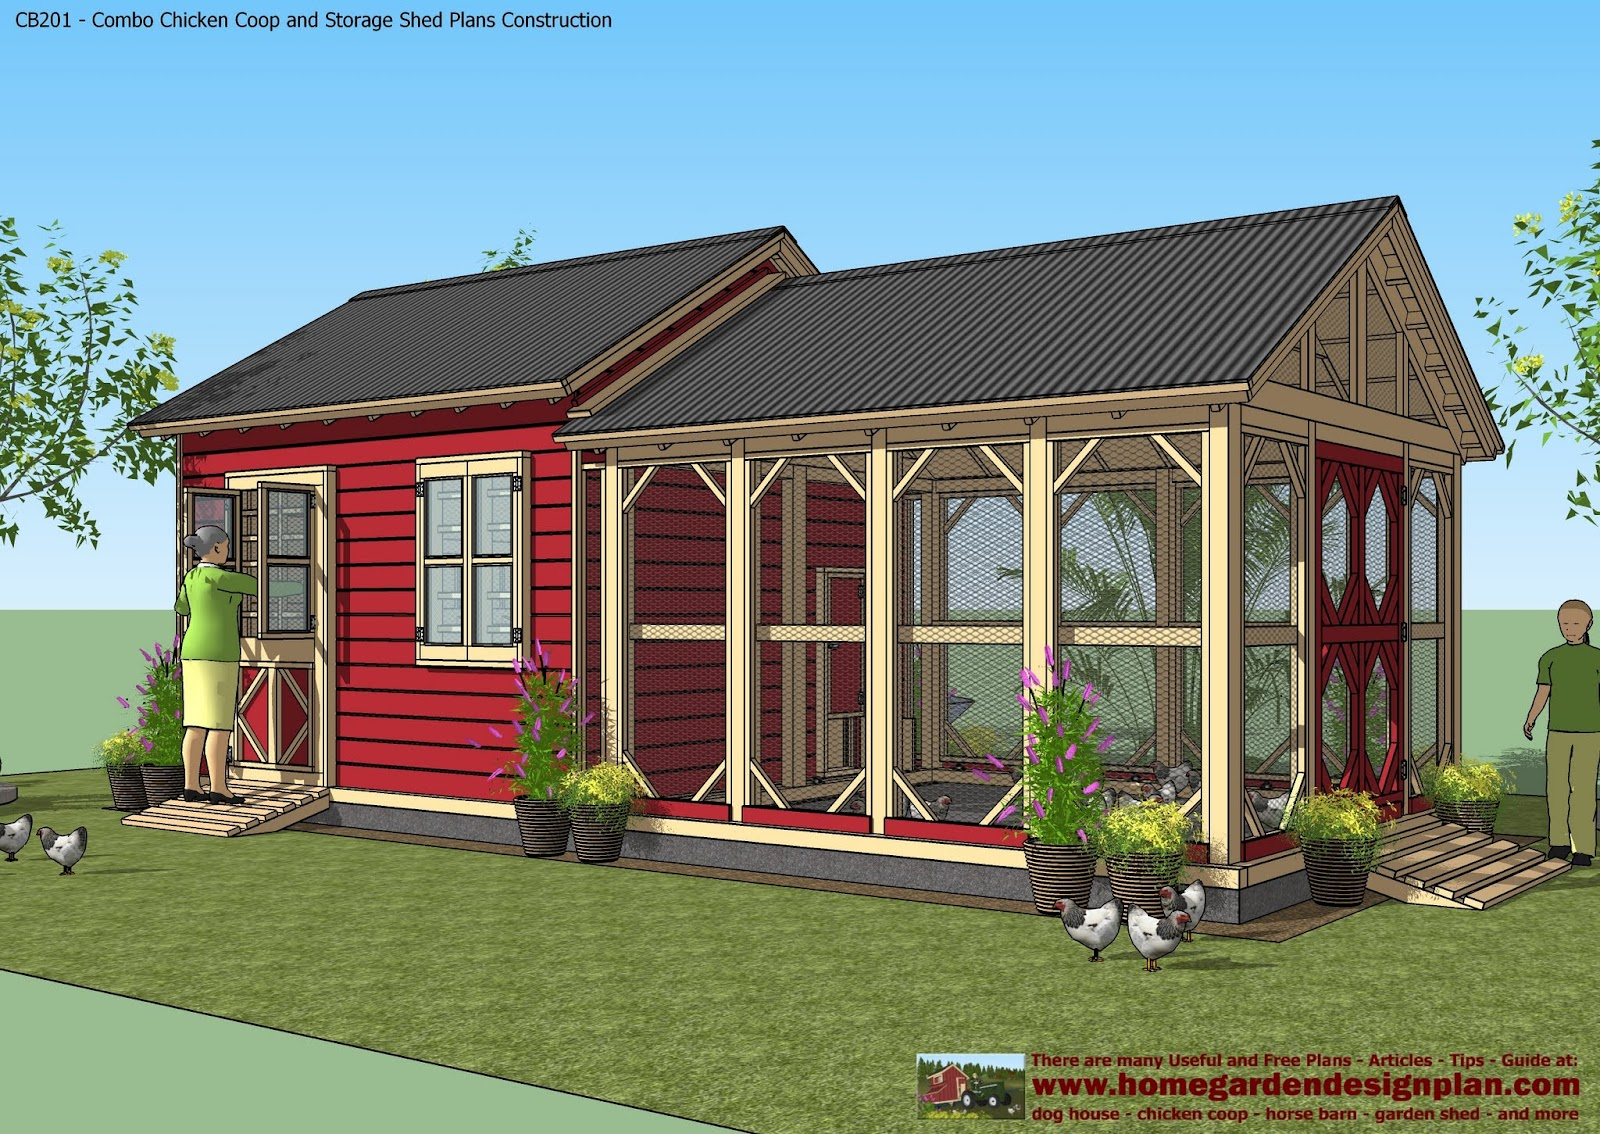 Home garden plans cb201 combo plans chicken coop for Storage building designs